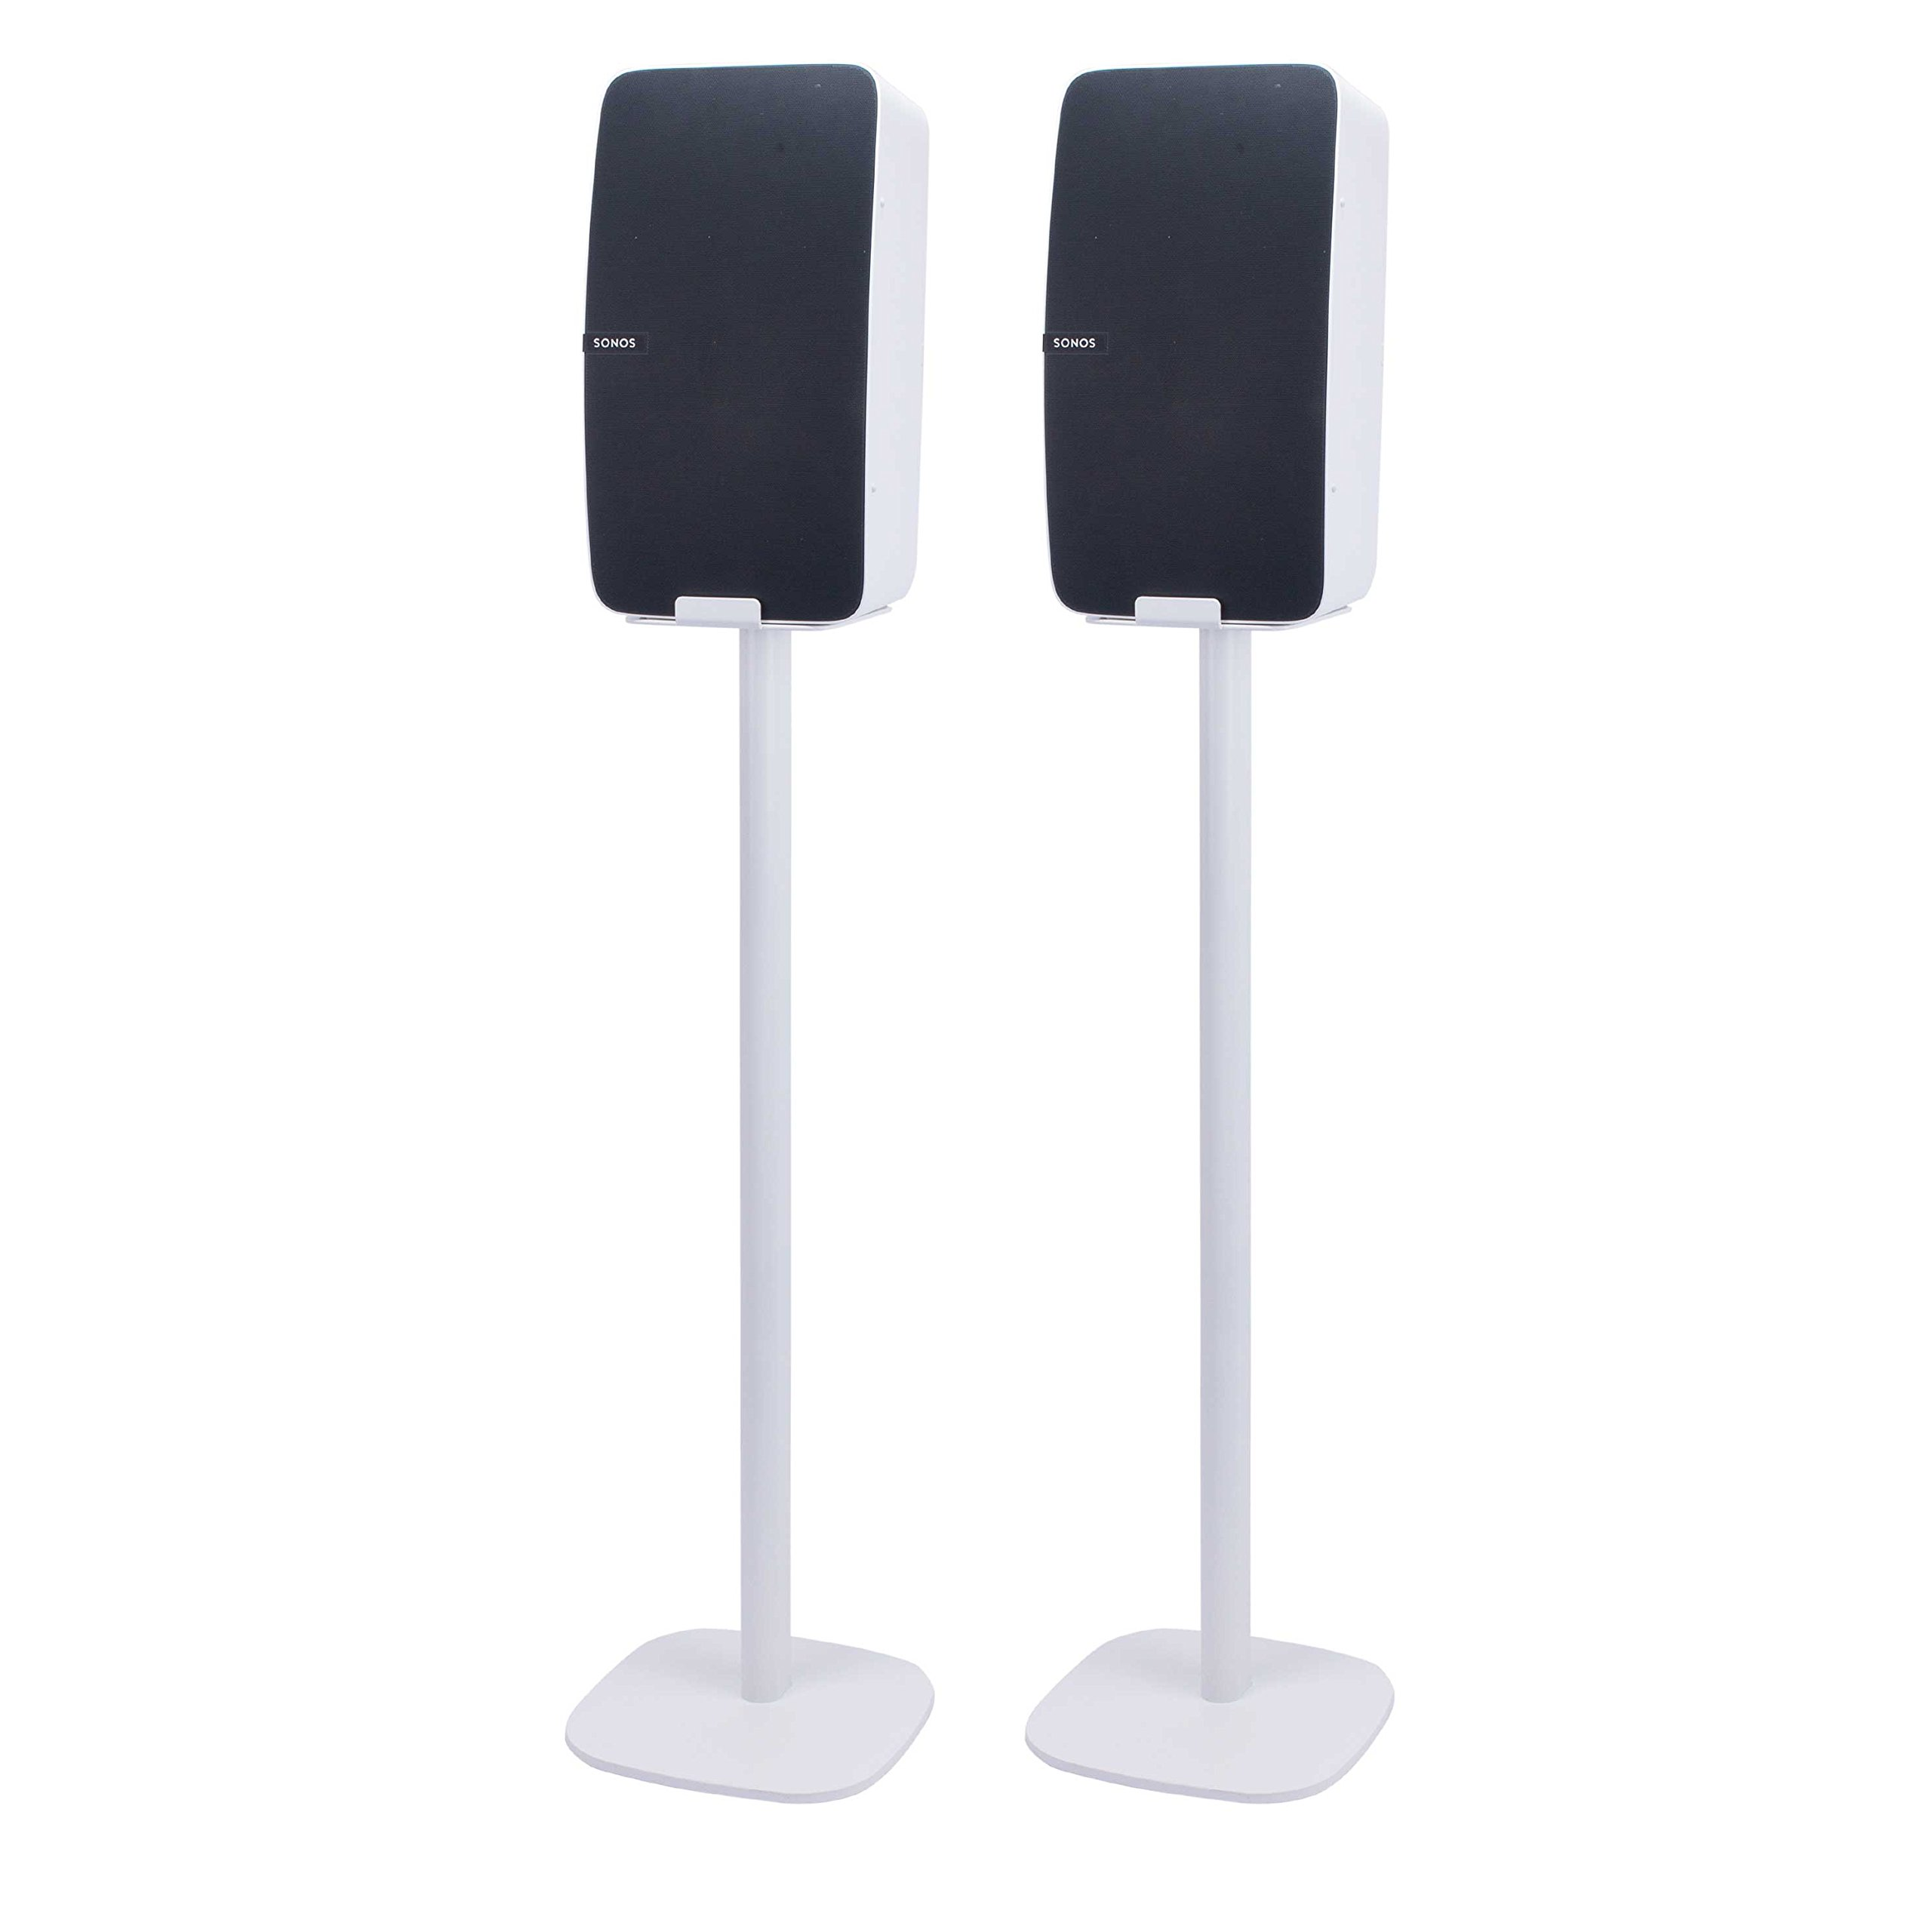 Vebos floor stand Sonos Play 5 gen 2 white set - vertical en optimal experience in every room - Allows you to place your SONOS PLAY 5 exactly where you want it - Two years warranty